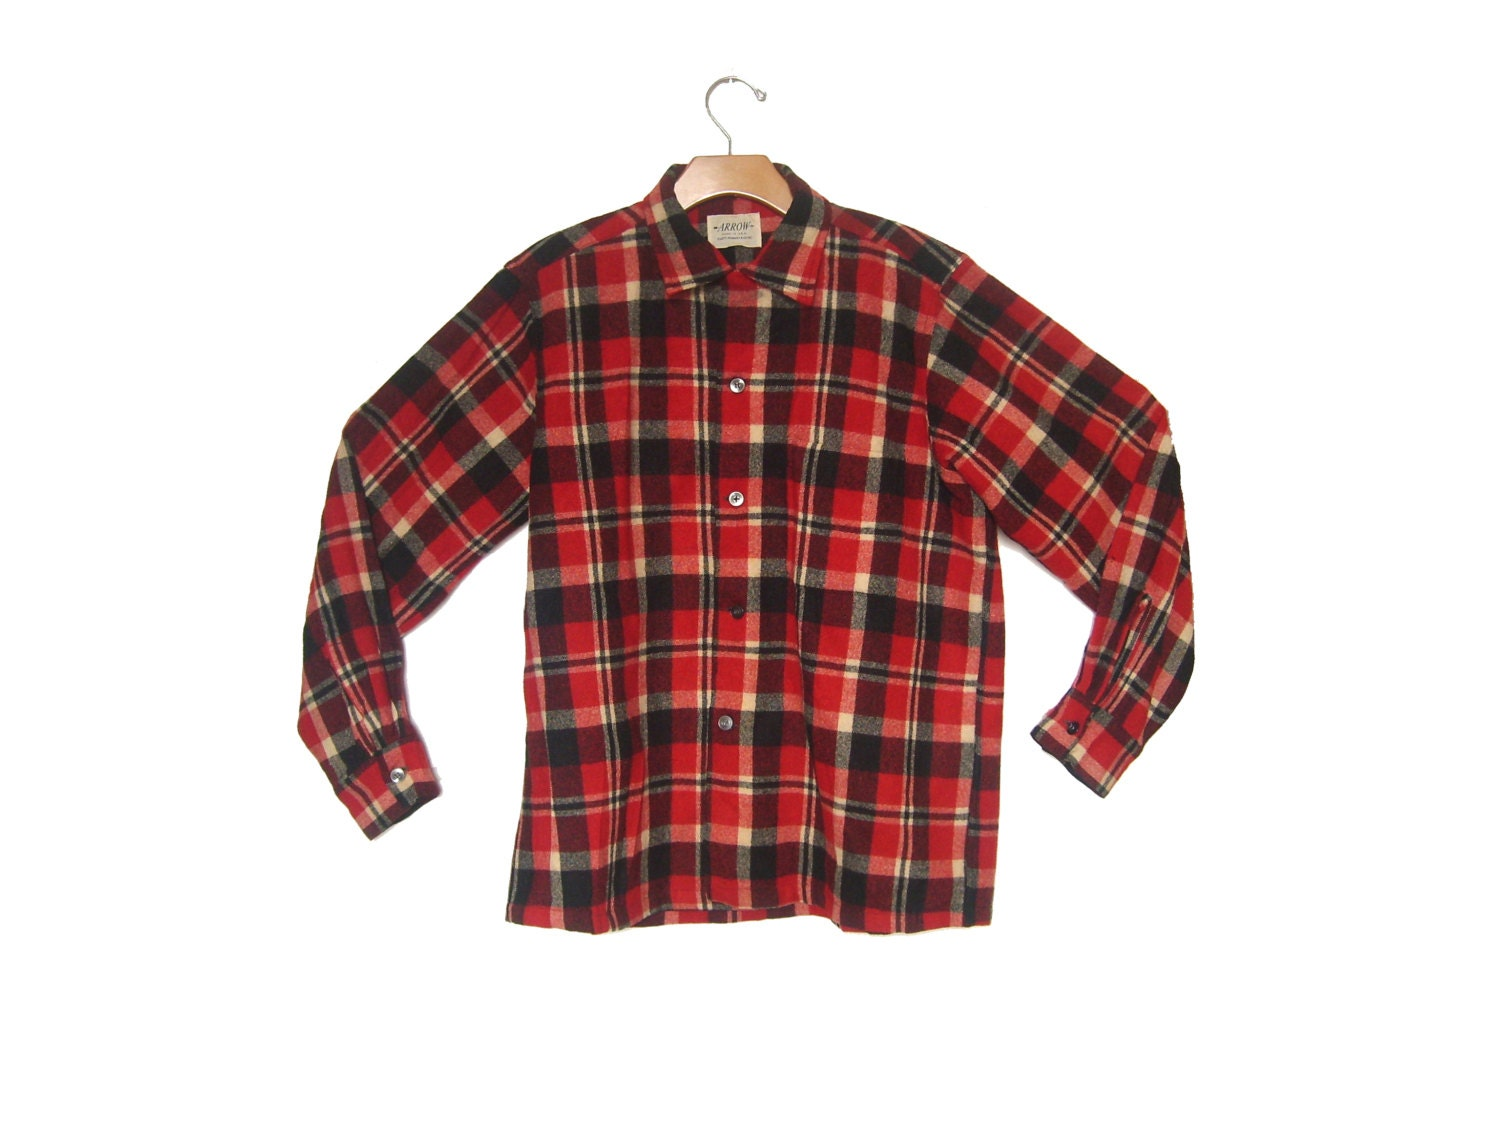 Vintage Wool Shirt Plaid Red Black Arrow Men 39 S Medium